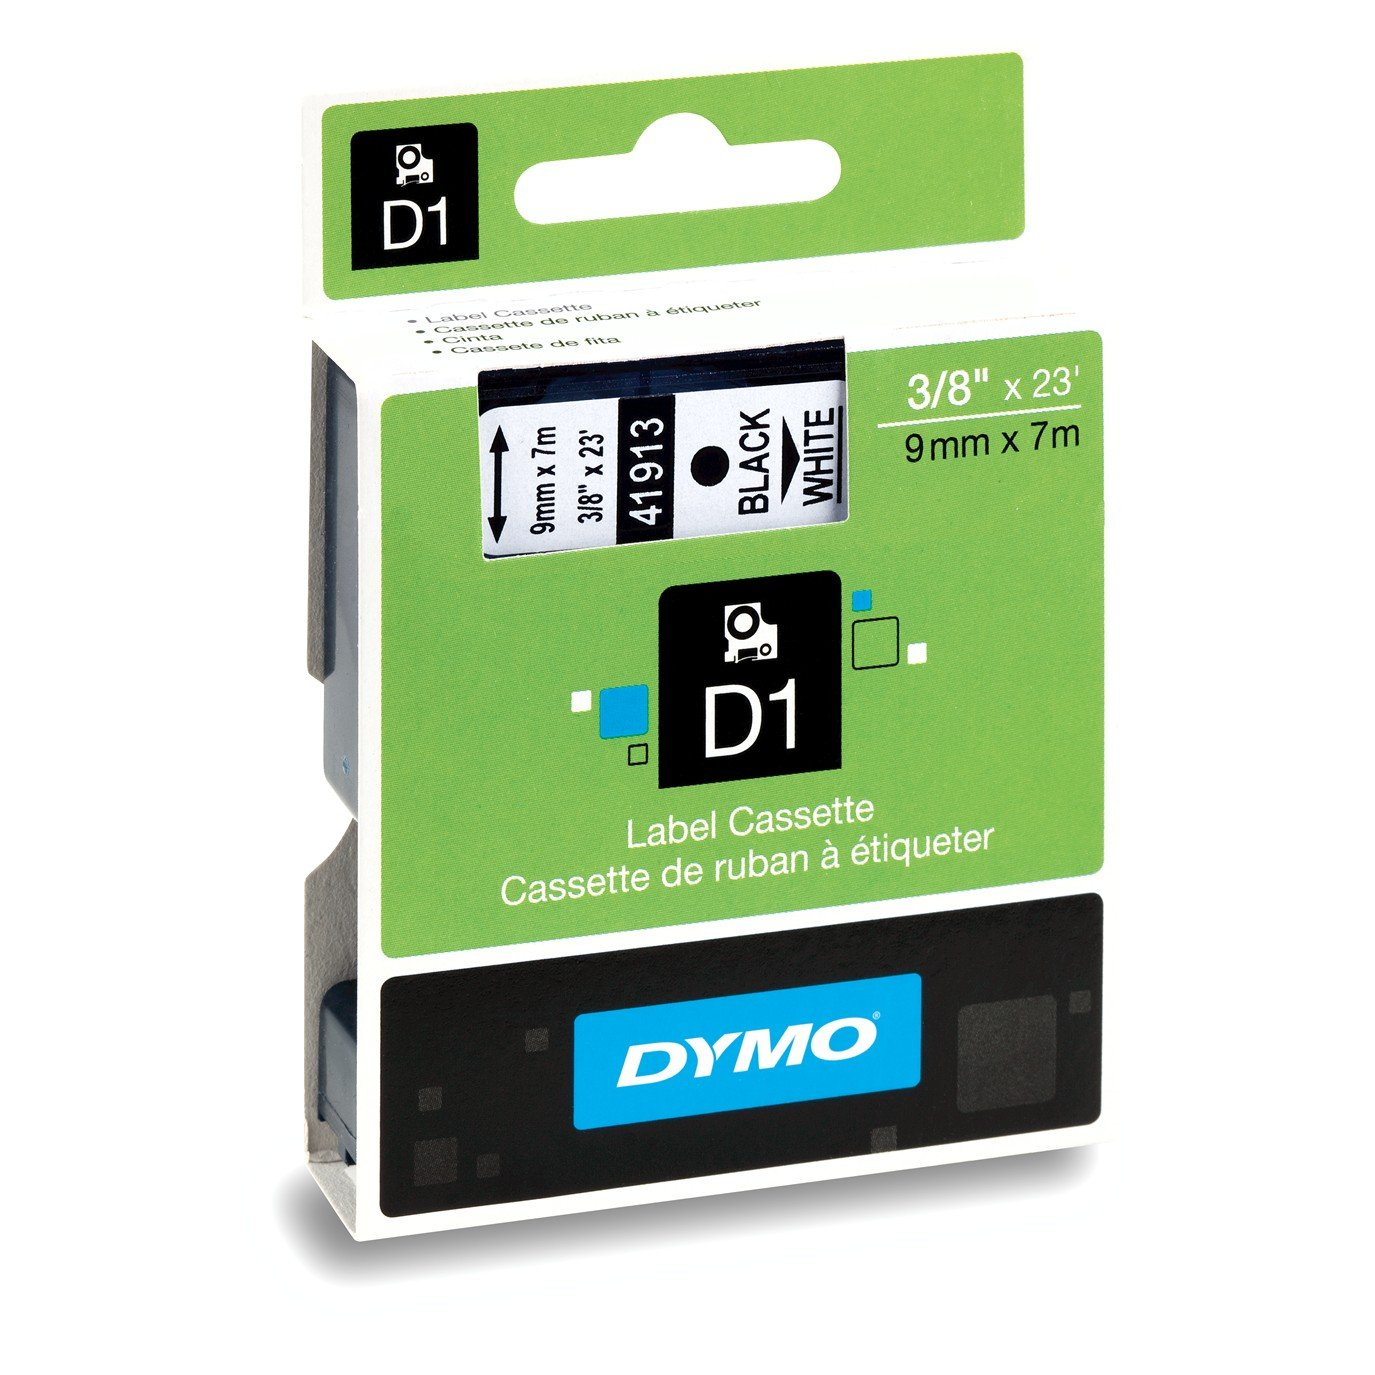 DYMO Standard D1 Labeling Tape for LabelManager Label Makers, Black print on White tape, 1/2'' W x 23' L, 1 catridge (45013) 5 PACK 1/2'' W x 23' L